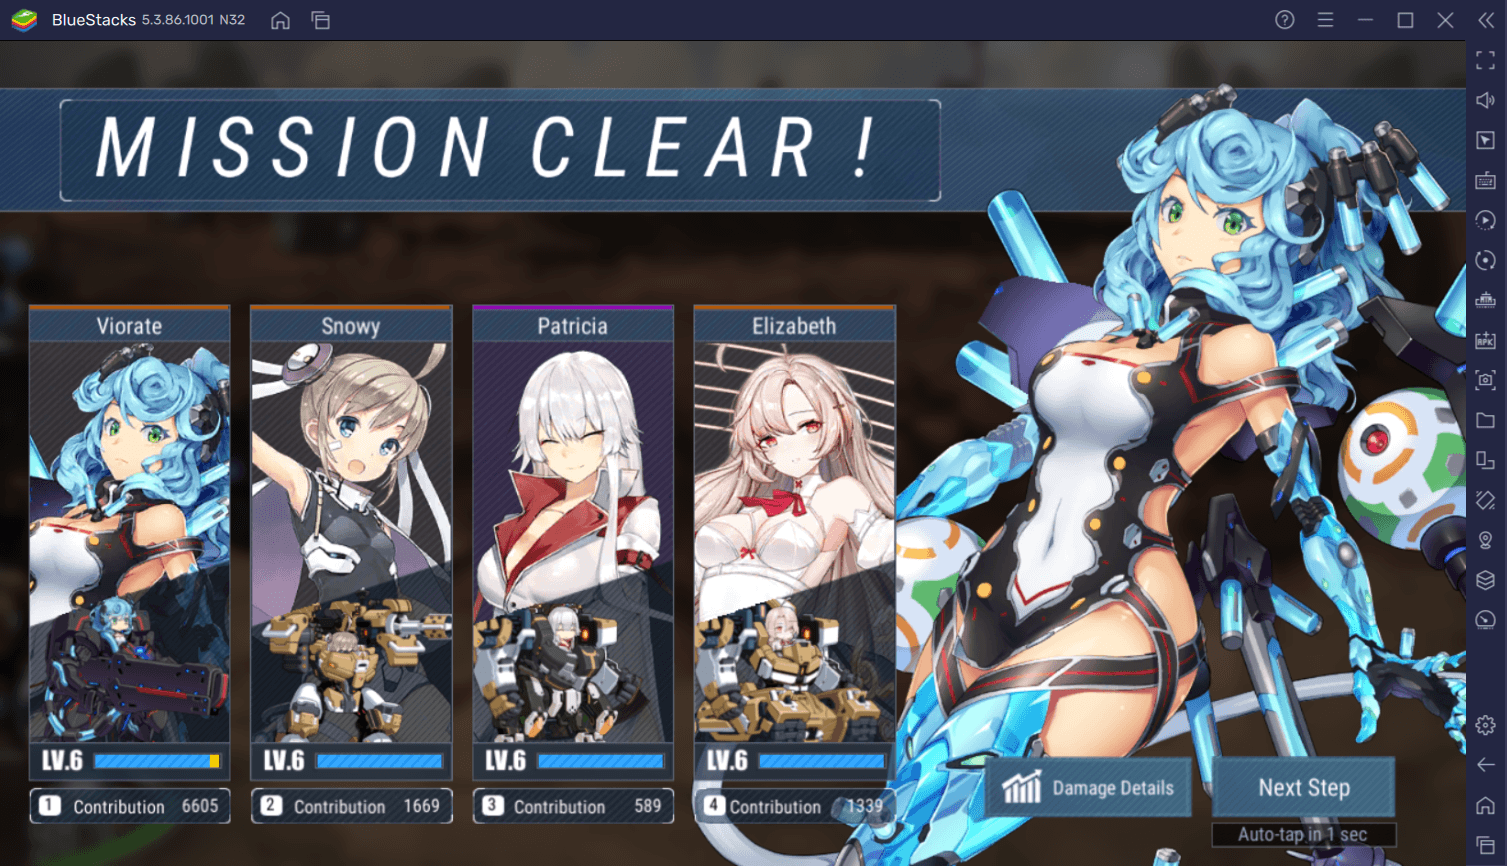 Final Gear: Use BlueStacks Features To Increase Efficiency and Ease of Playing